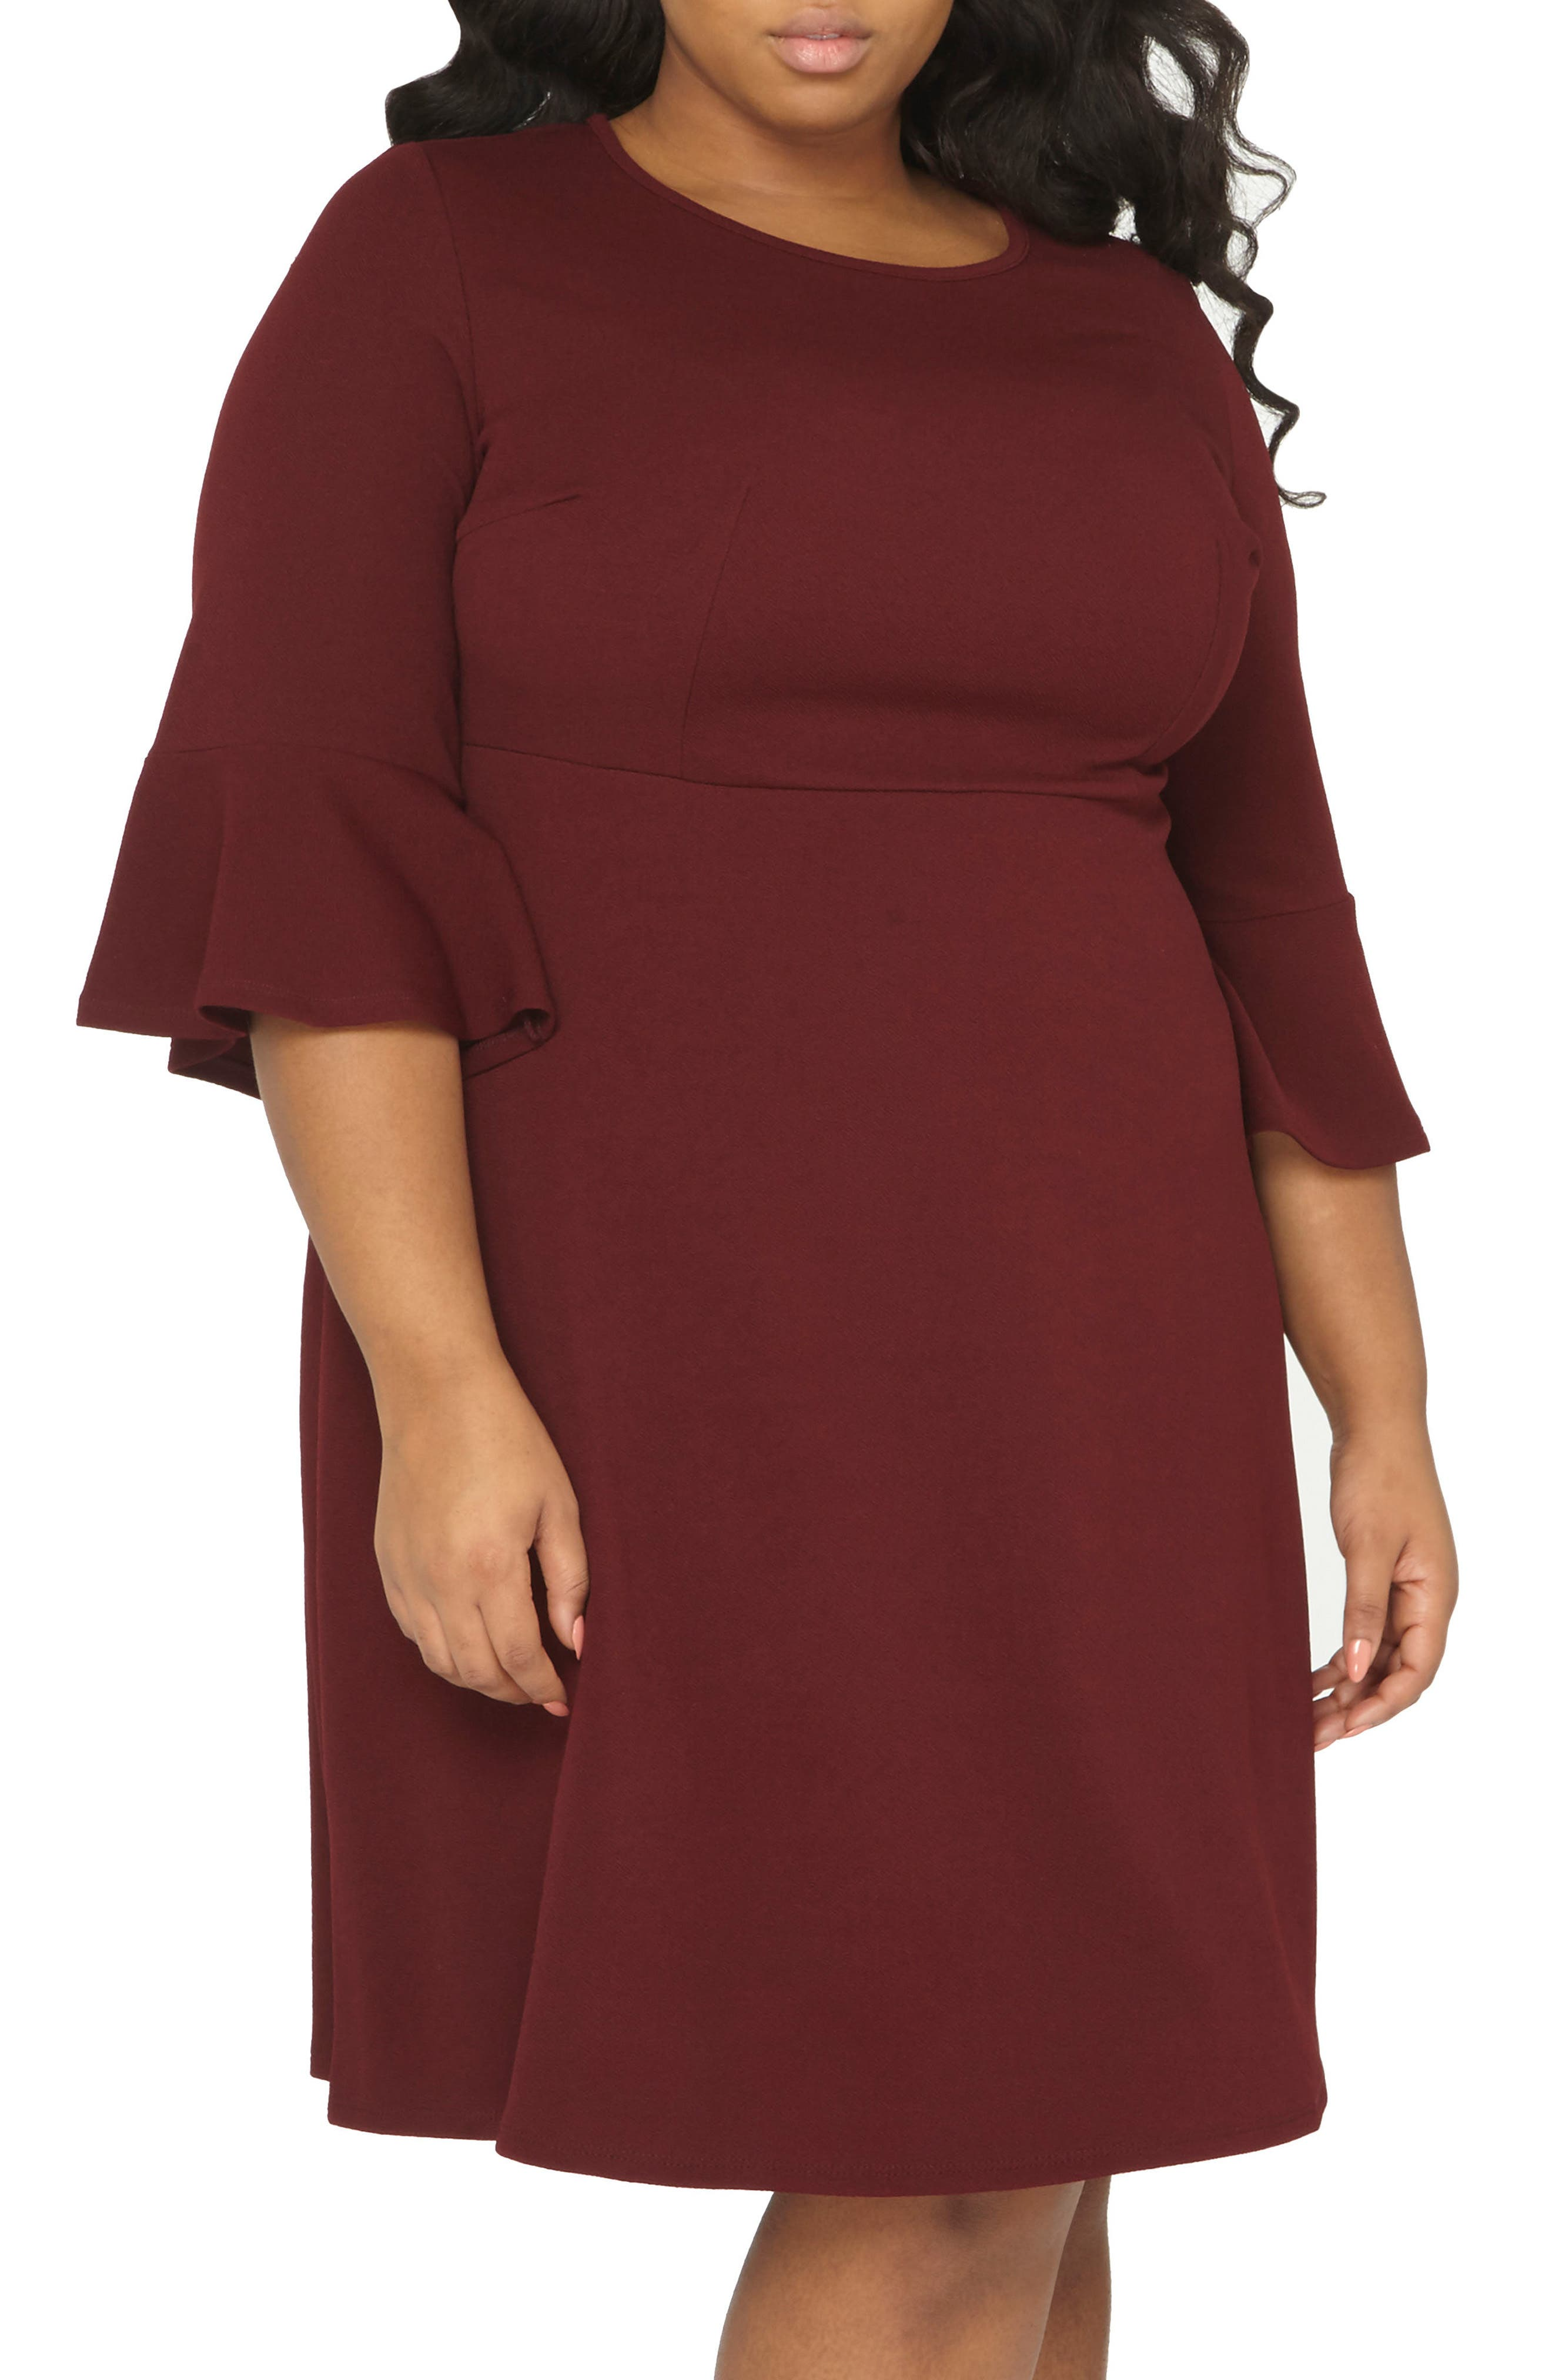 Ruffle Sleeve Fitted Dress,                         Main,                         color, Wine